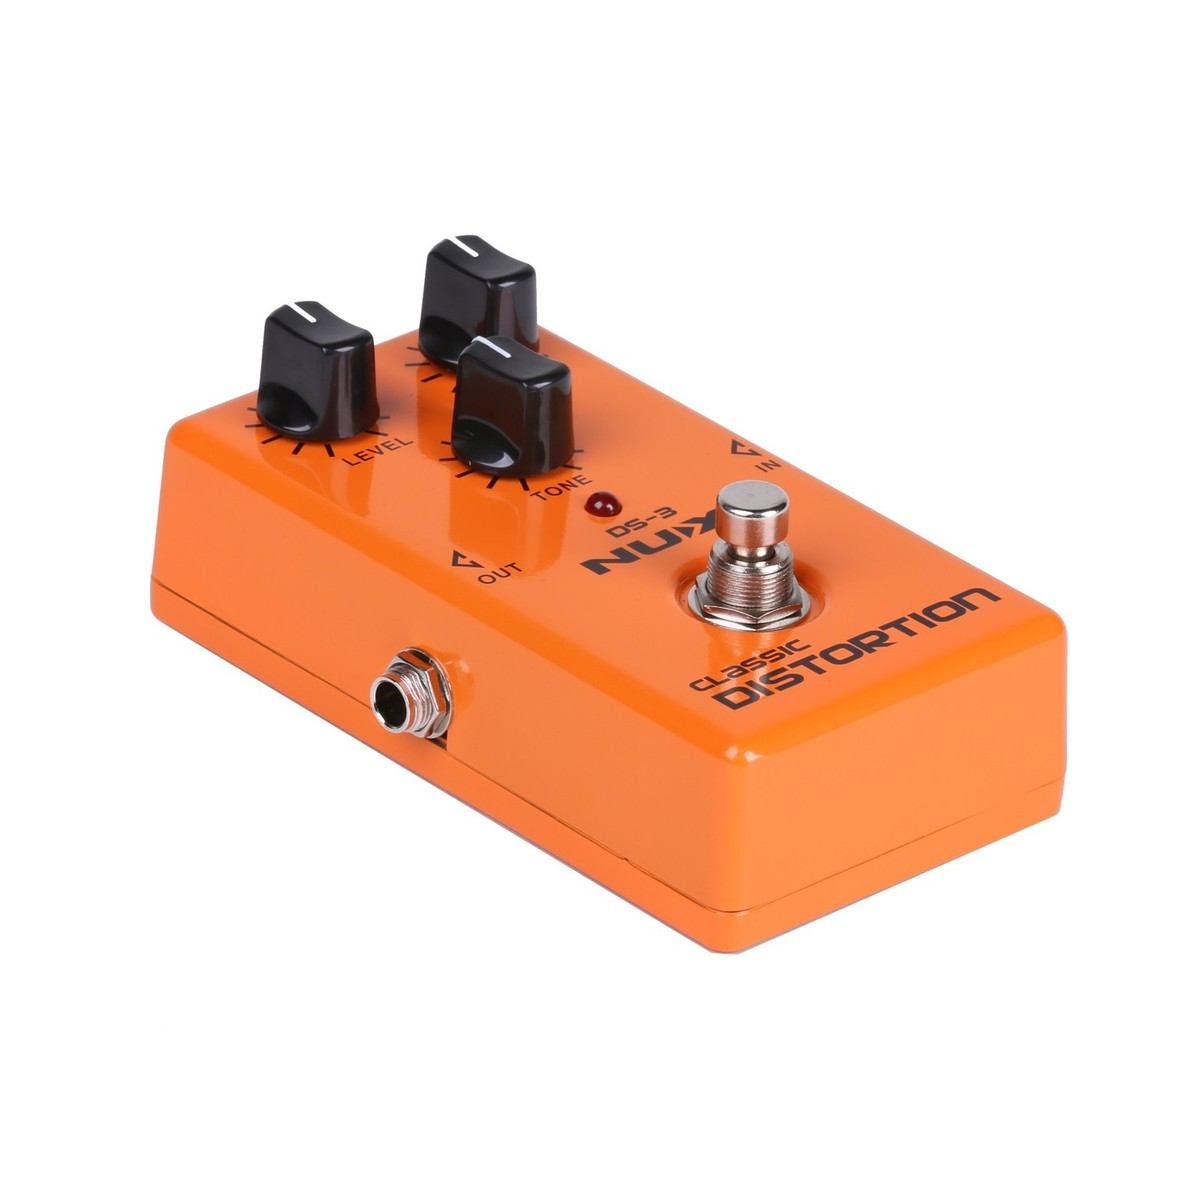 NUX DS-3 Distortion Guitar Effects Pedal at Gear4music.com